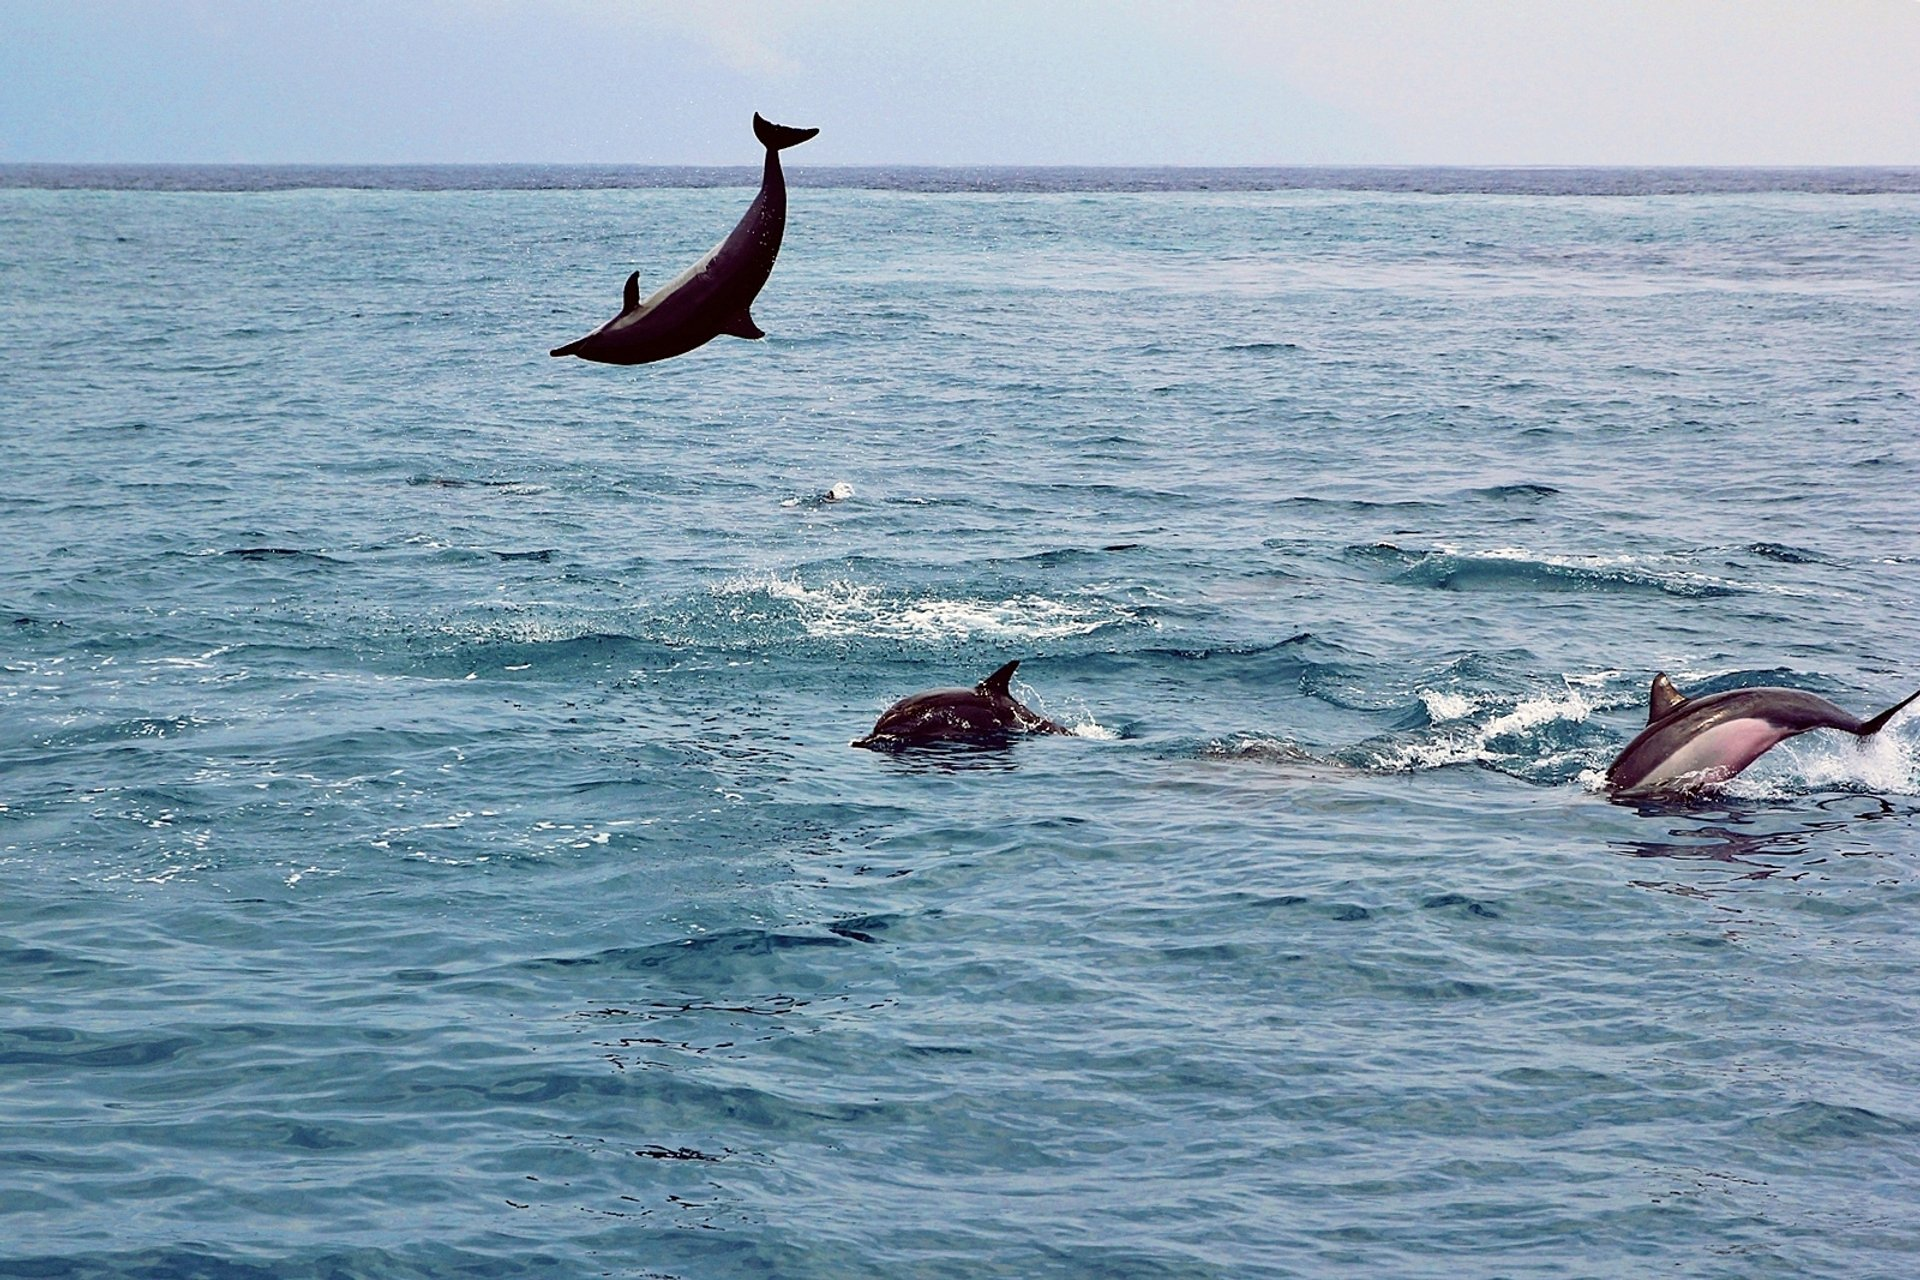 Dolphin and Whale Watching in Taiwan - Best Season 2020